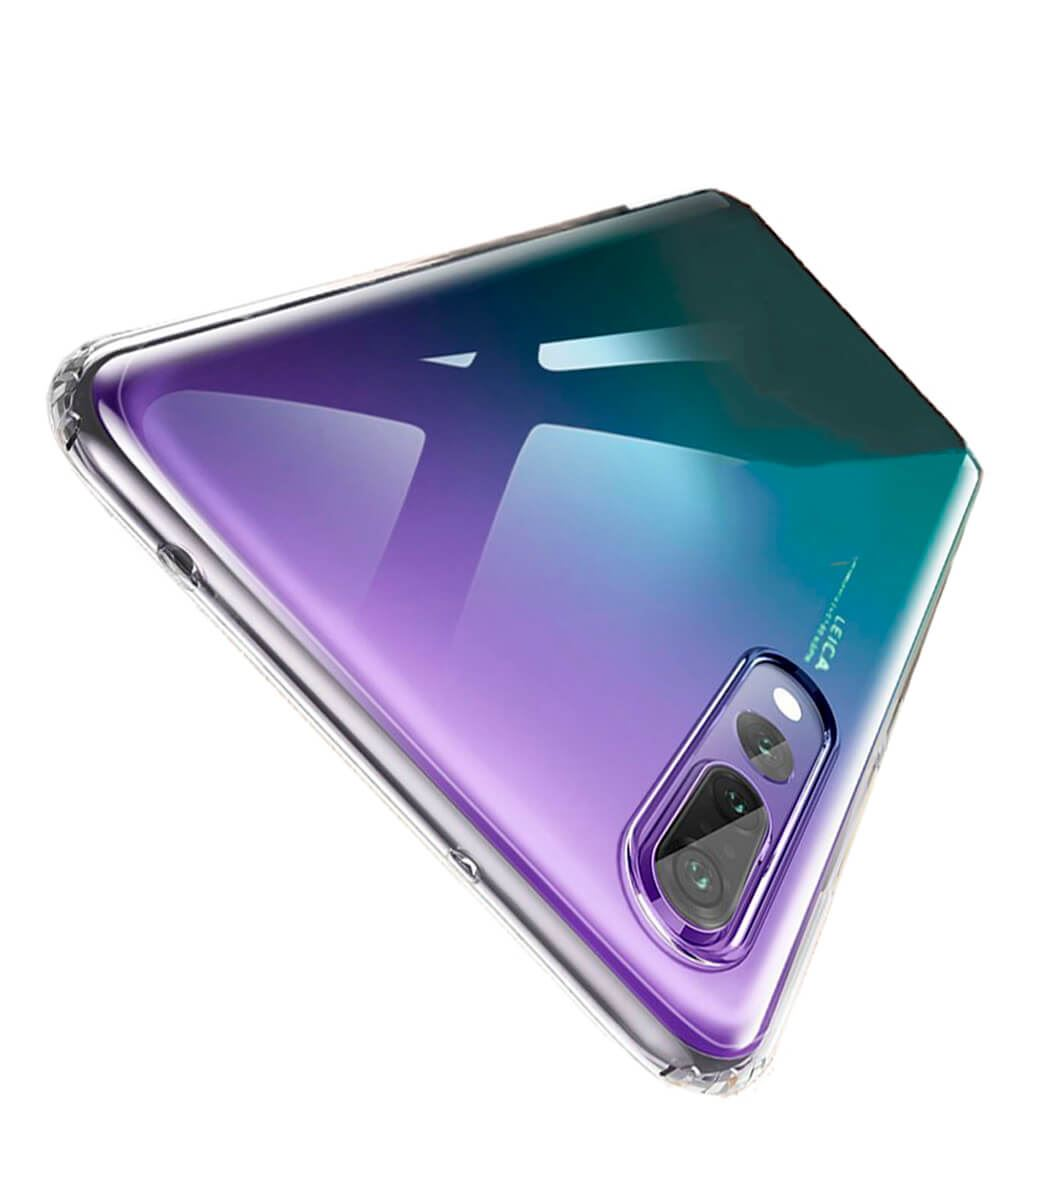 Shockproof-Silicone-Protective-Clear-Gel-Cover-Case-For-Huawei-P20-Pro-P-Smart thumbnail 14